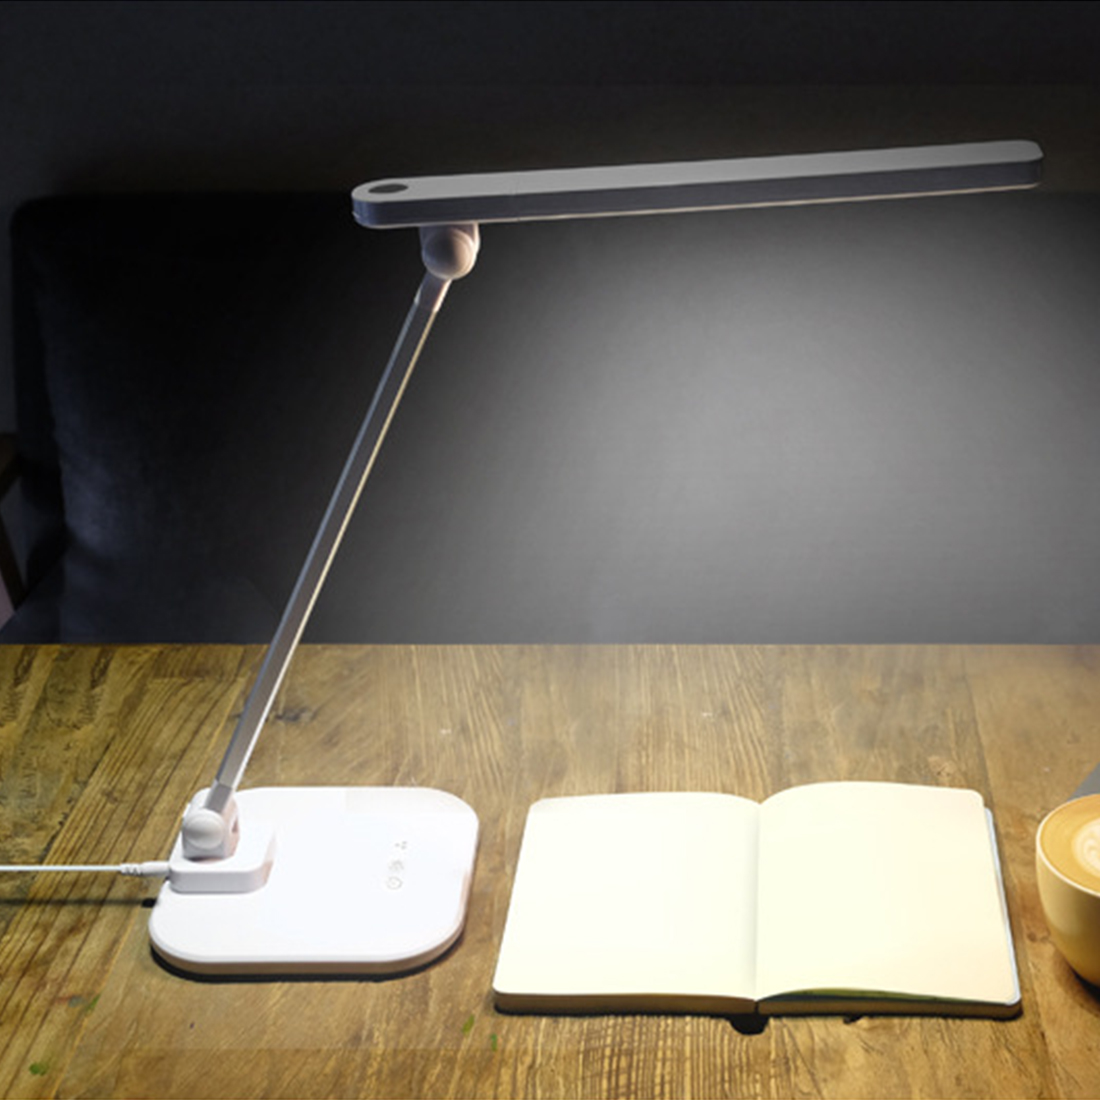 5W 36LED Desk Lamp Foldable Dimmable Rotatable Eye Care LED Touch-Sensitive Controller USB Charging Port Table Lamp chic short wigs for women human hair w bangs fluffy pixie cut wig brown